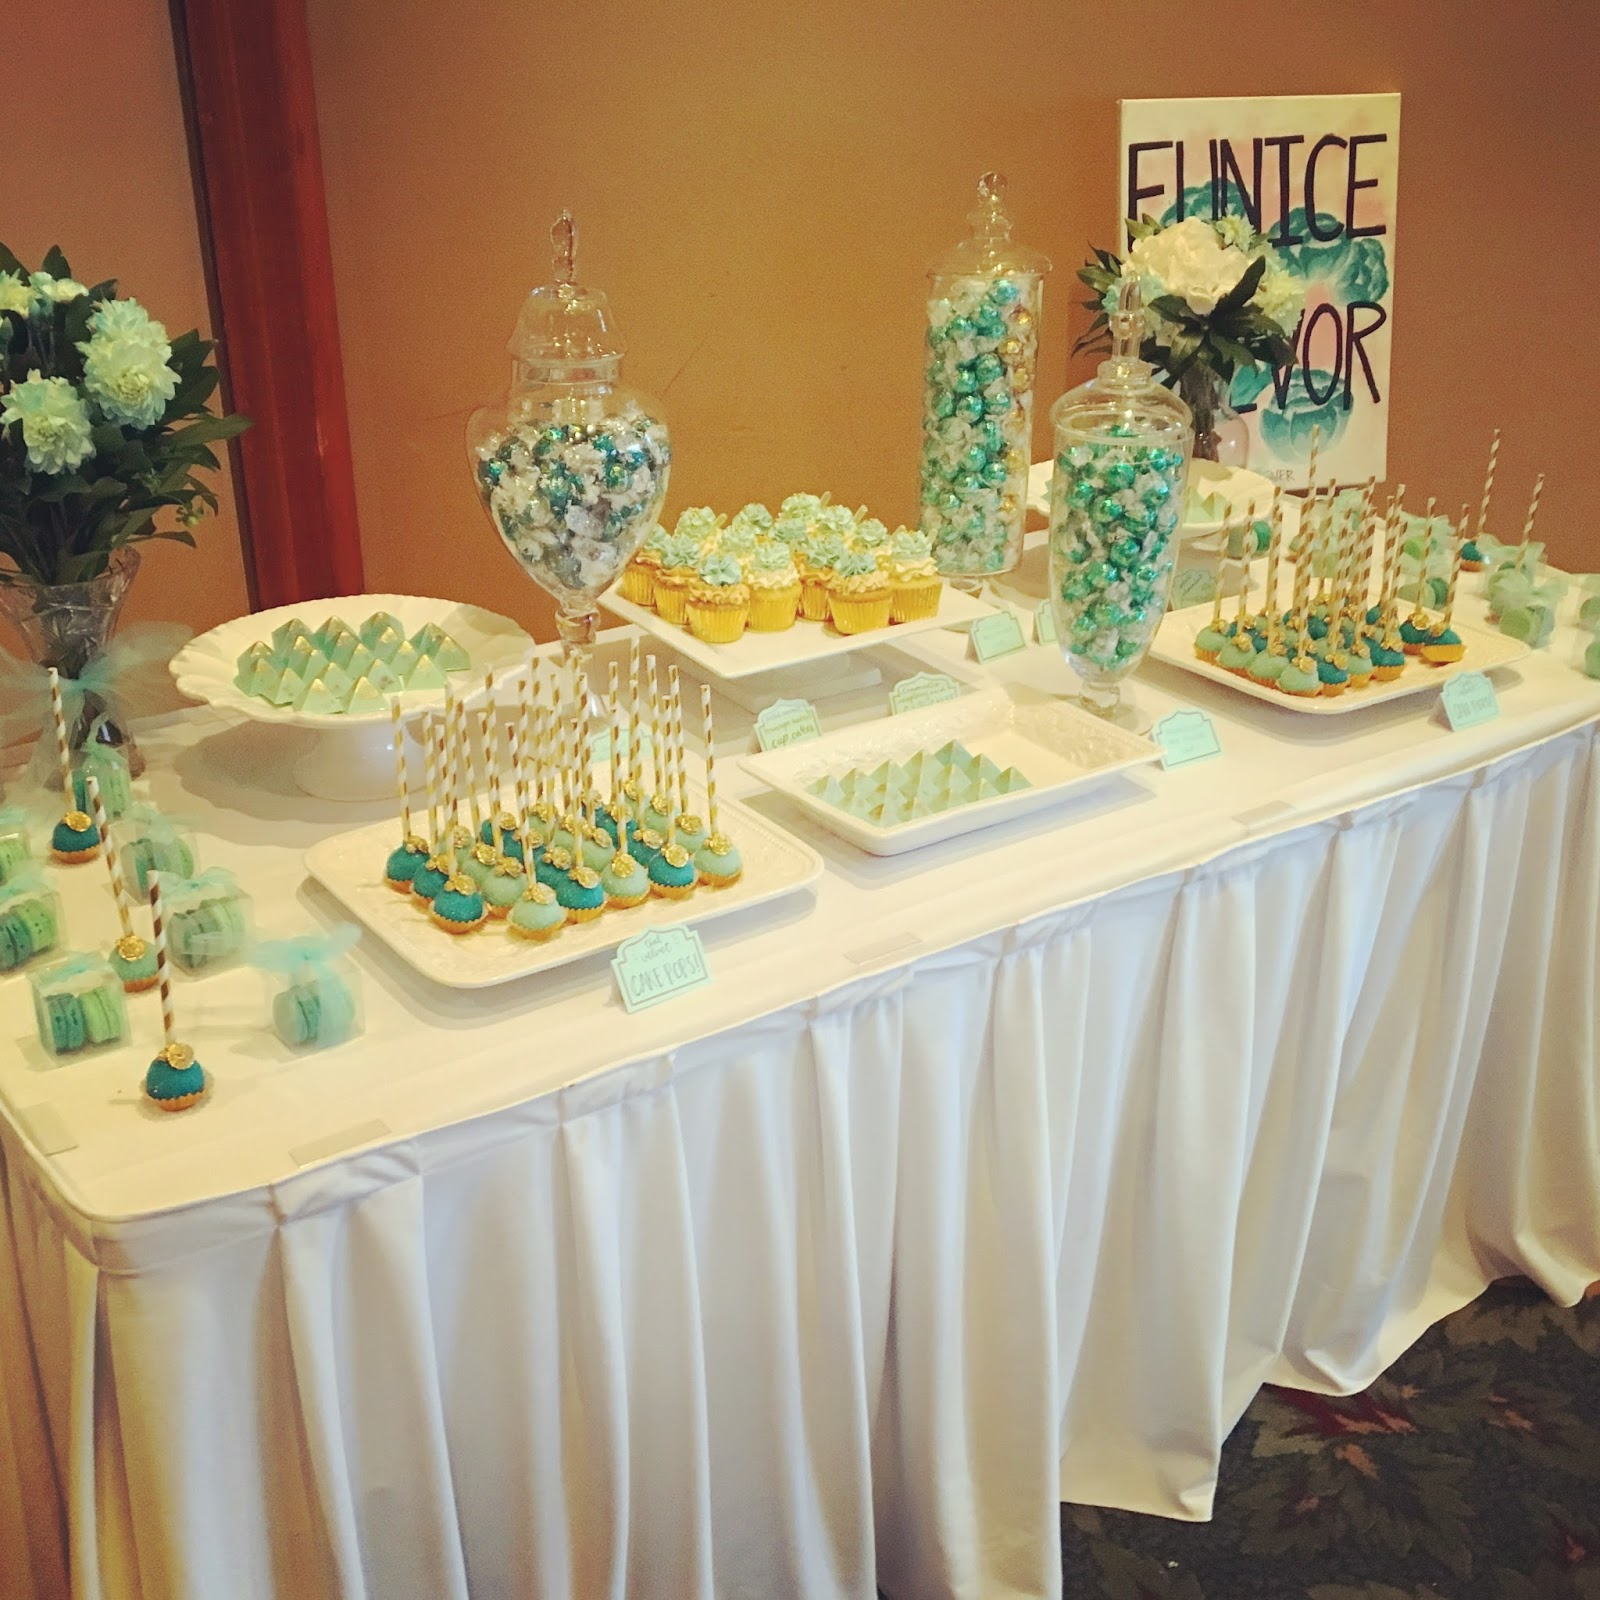 Teal, White & Gold Wedding Cake & Dessert Table | Crissa\'s Cake Corner!